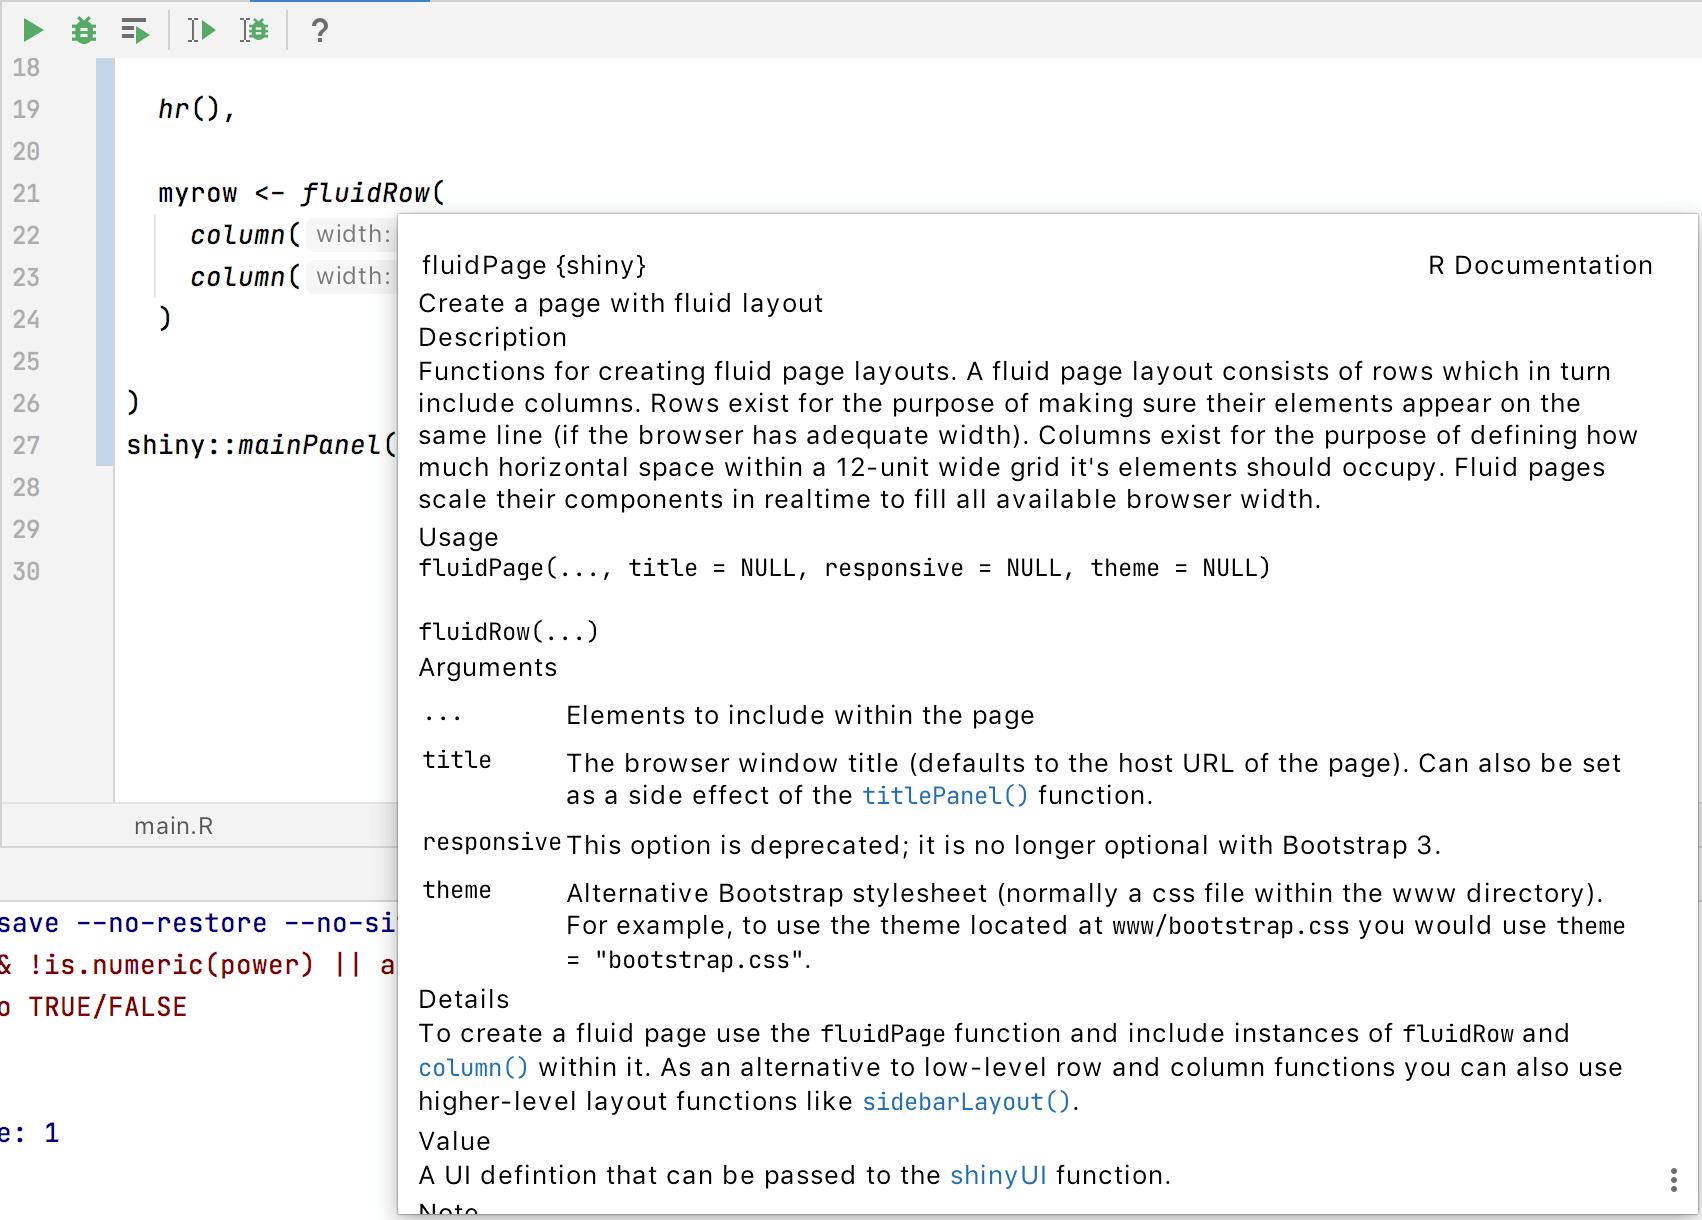 function documentation preview